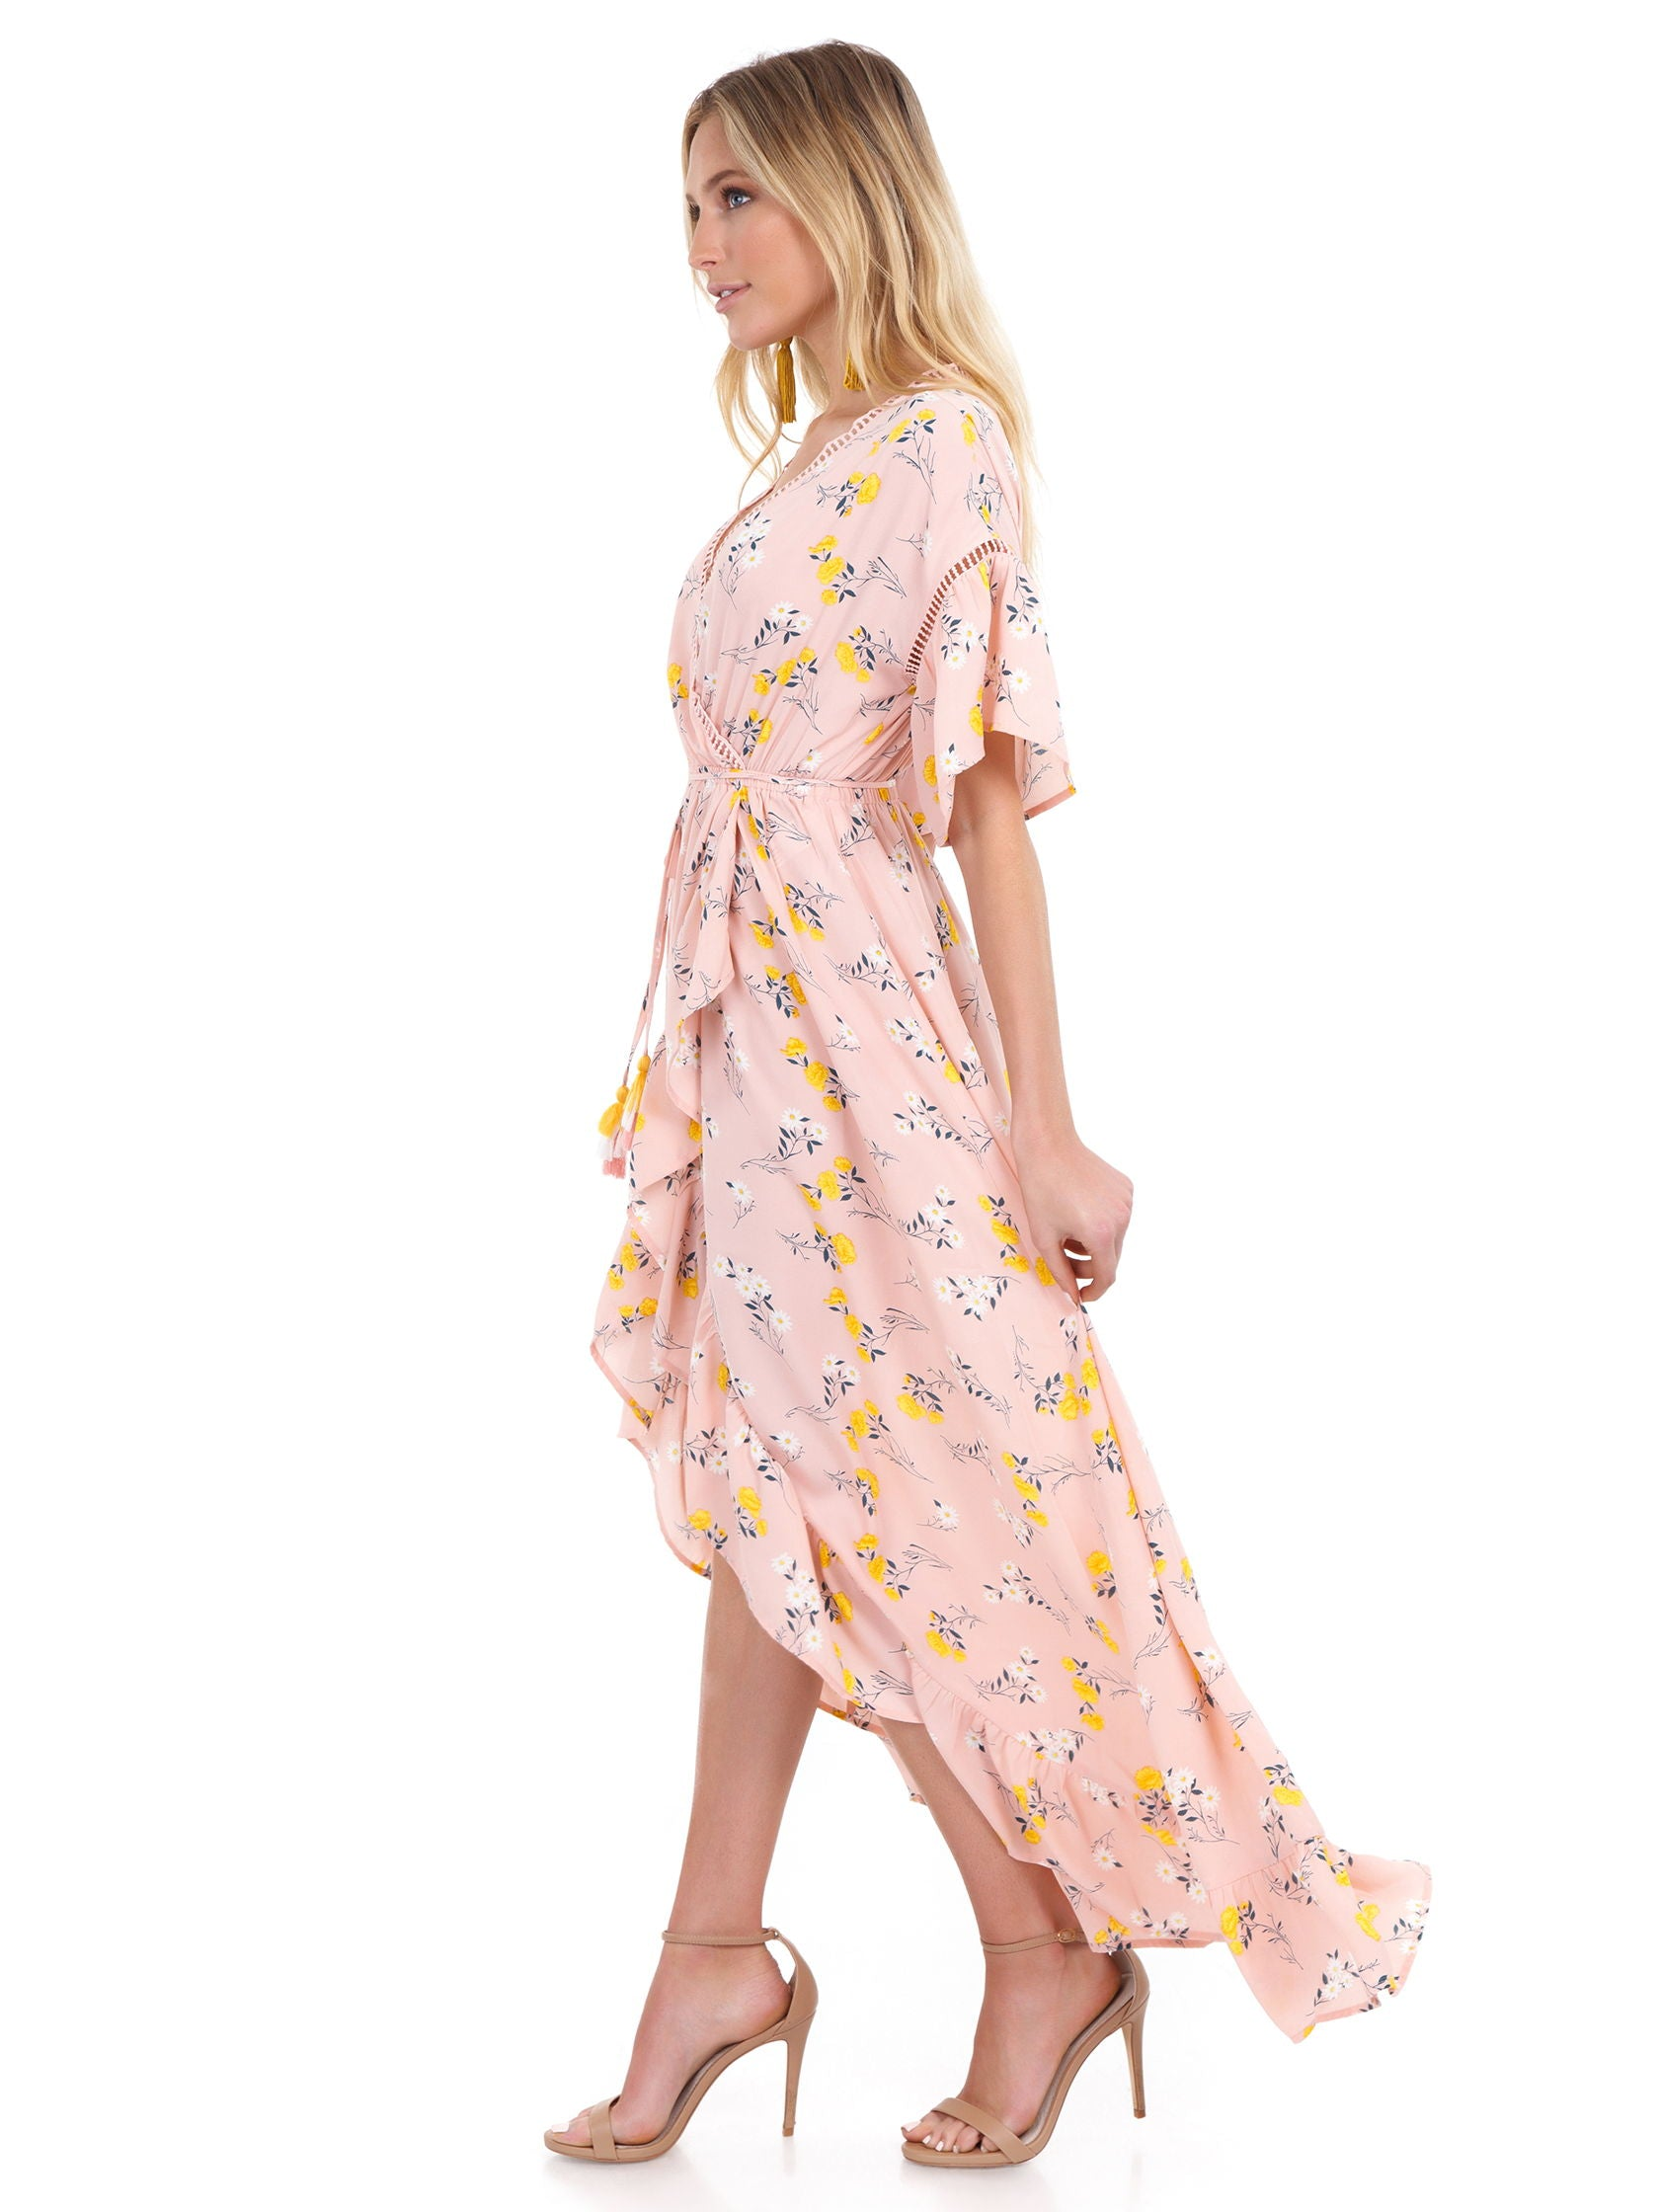 Woman wearing a dress rental from Moon River called Ruffle Sleeve Wrap Dress